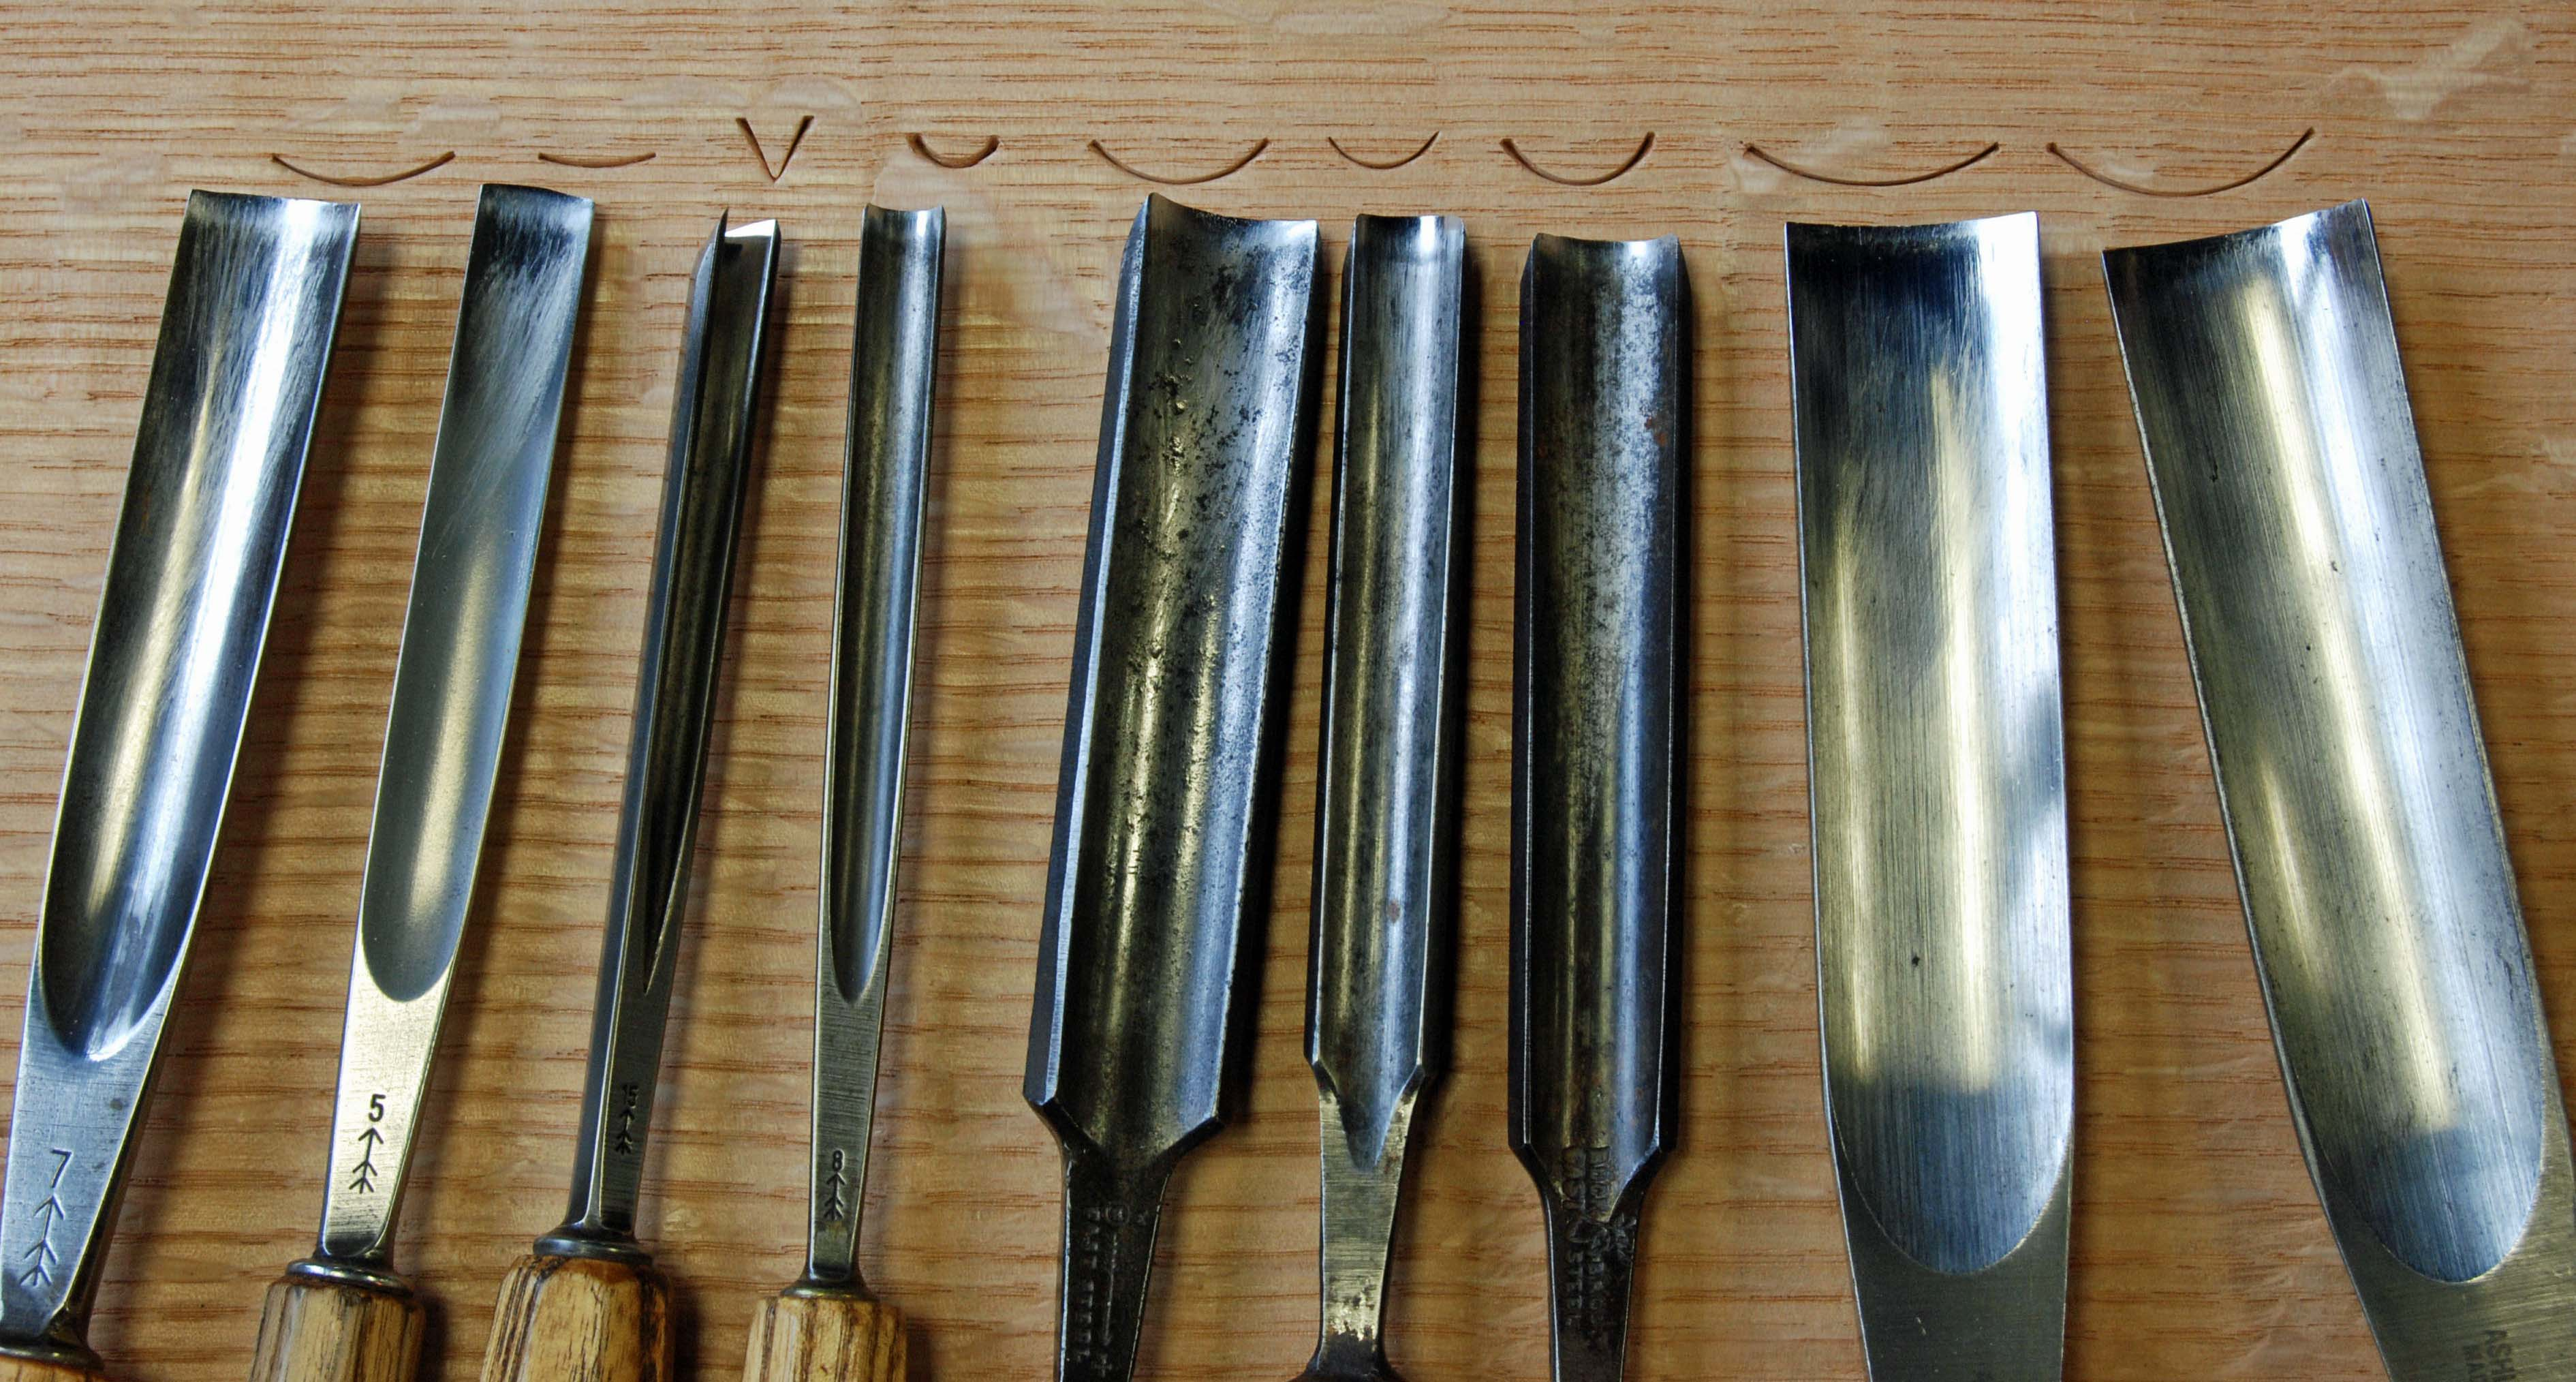 Carving tools I use for oak furniture | Peter Follansbee, joiner's ...